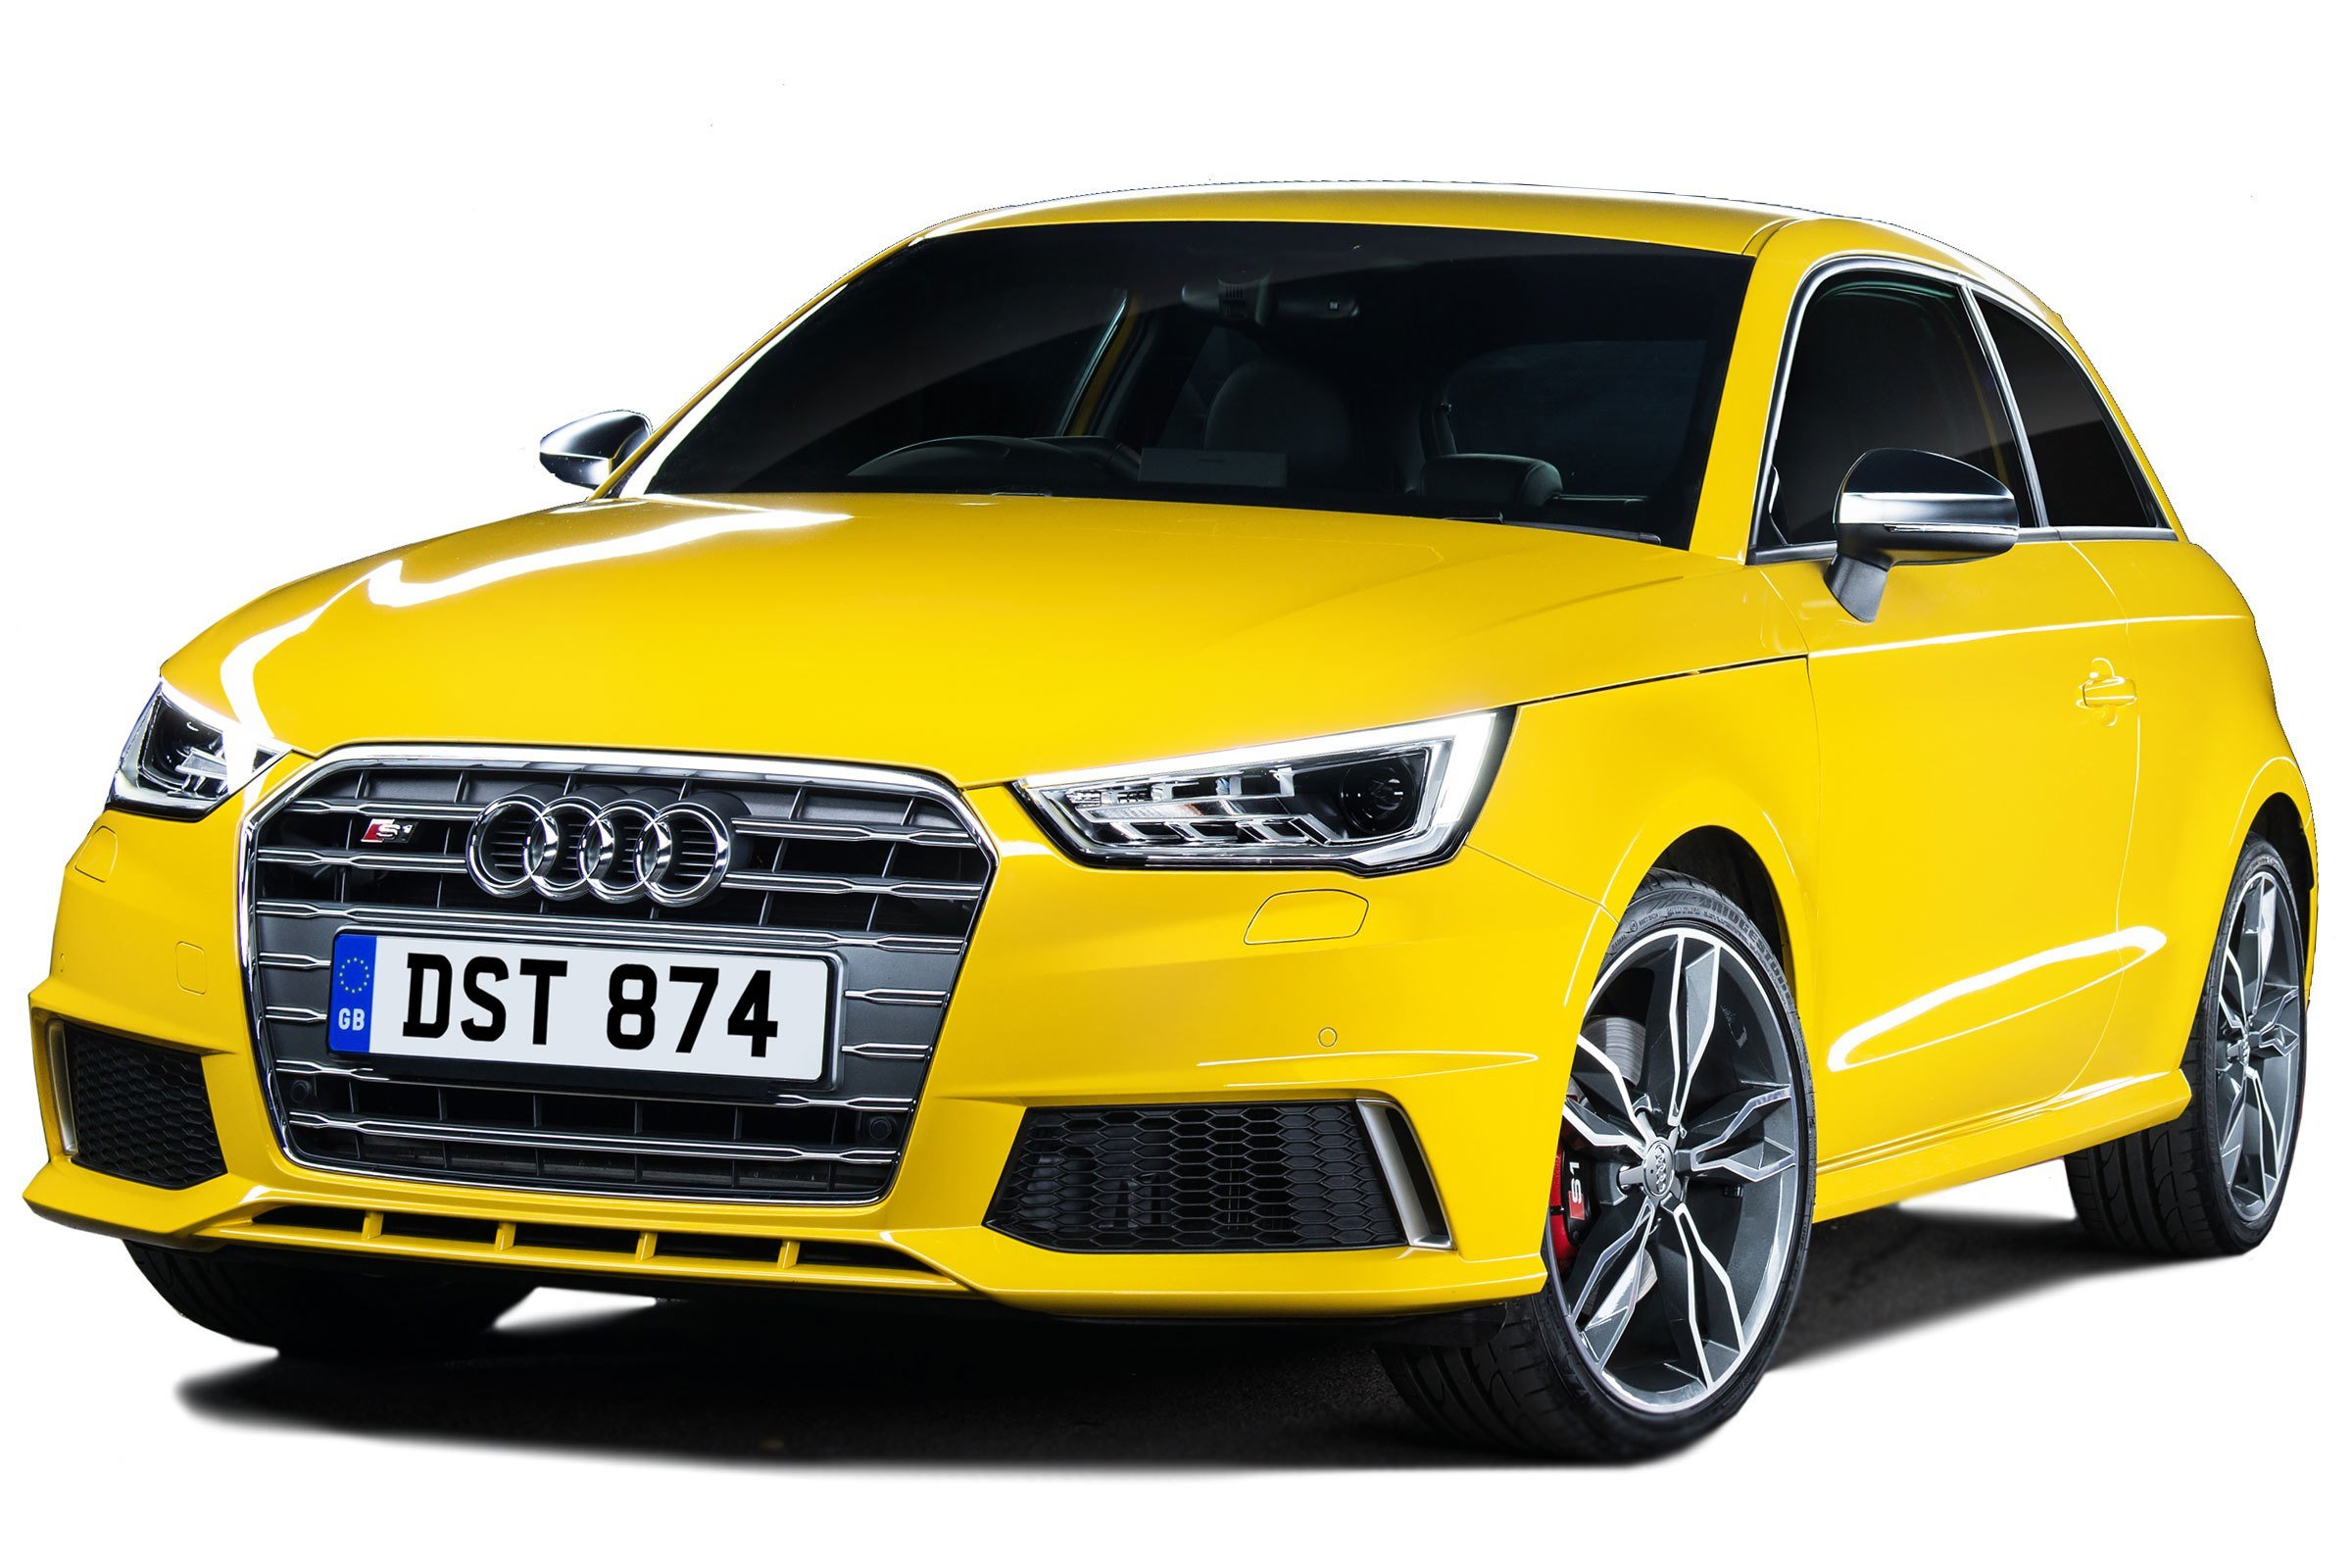 New Audi S1 Hatchback Prices Specifications Carbuyer On This Month